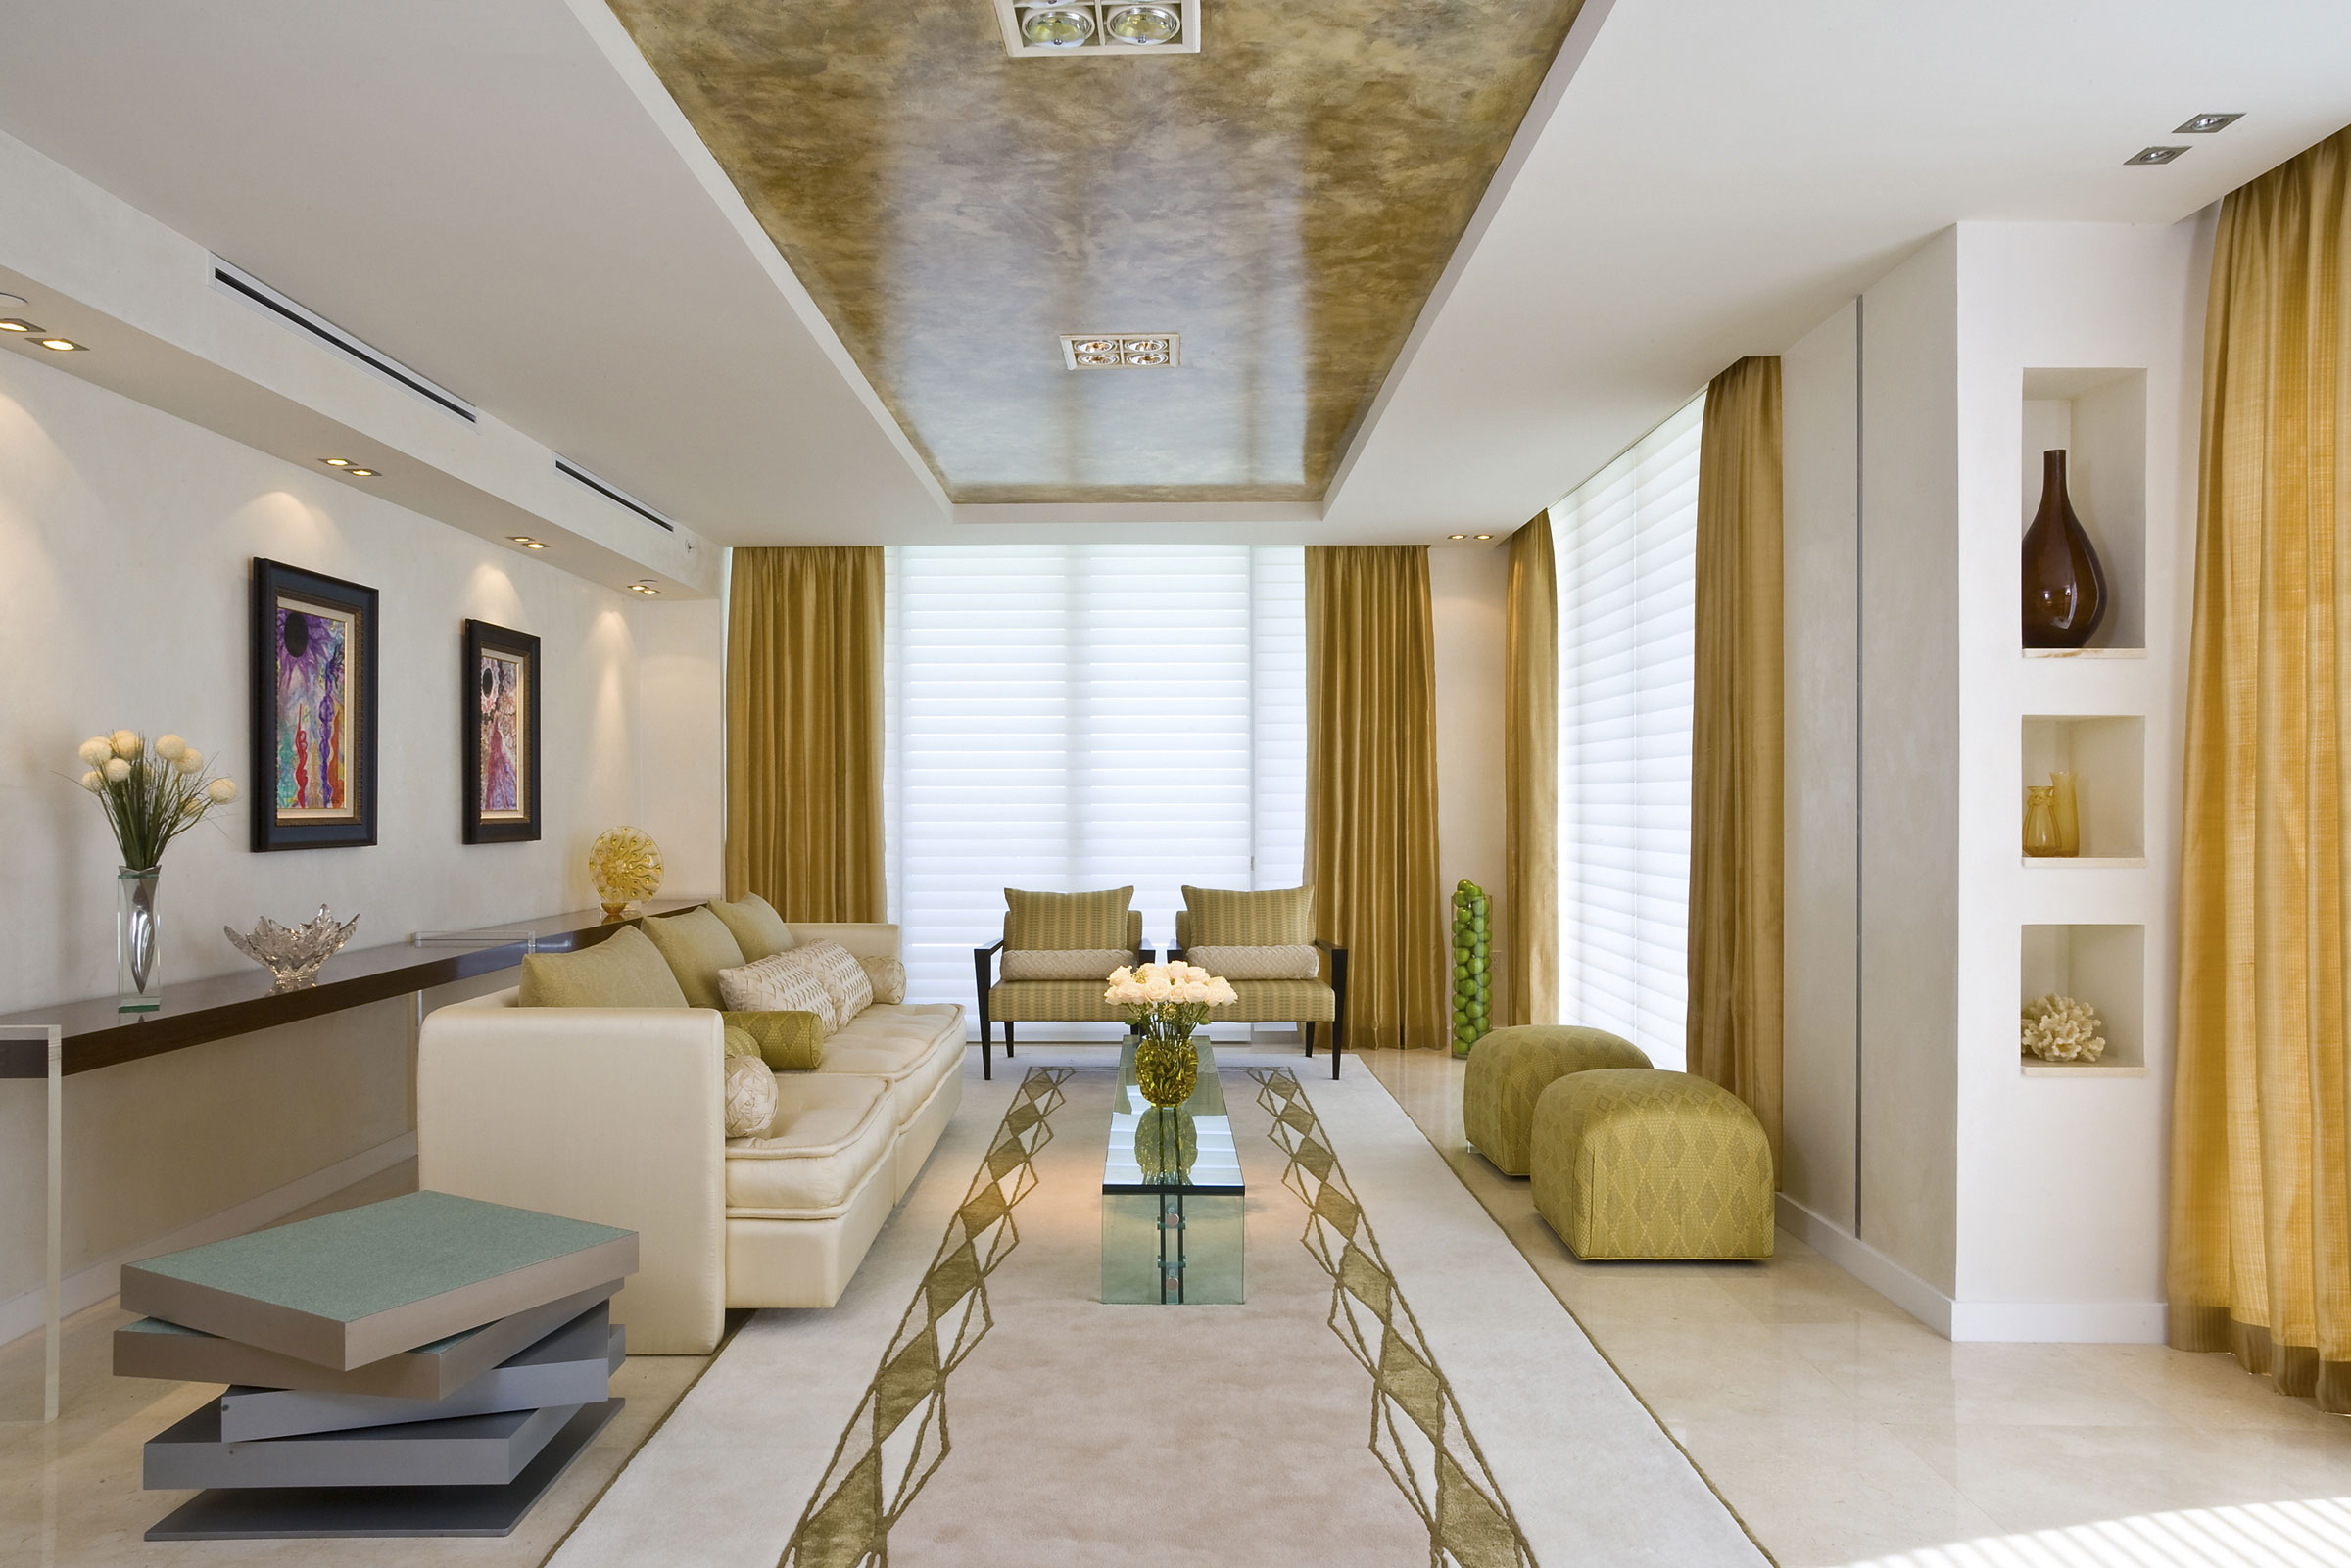 Decoration Ideas Home (View 5 of 10)